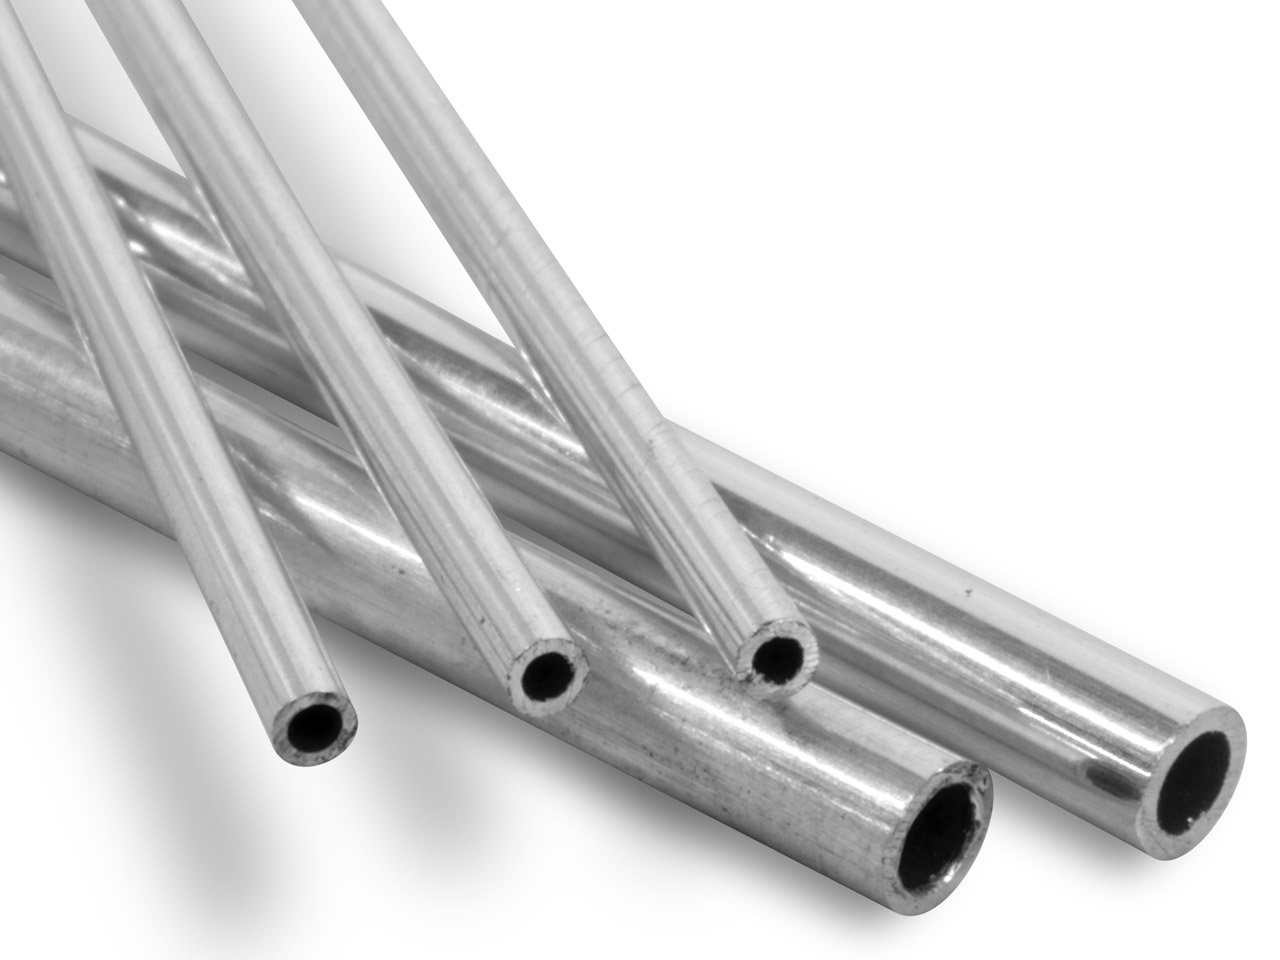 Sterling Silver Tube, Ref 7,       Outside Diameter 2.6mm,            Inside Diameter 1.8mm, 0.4mm Wall  Thickness